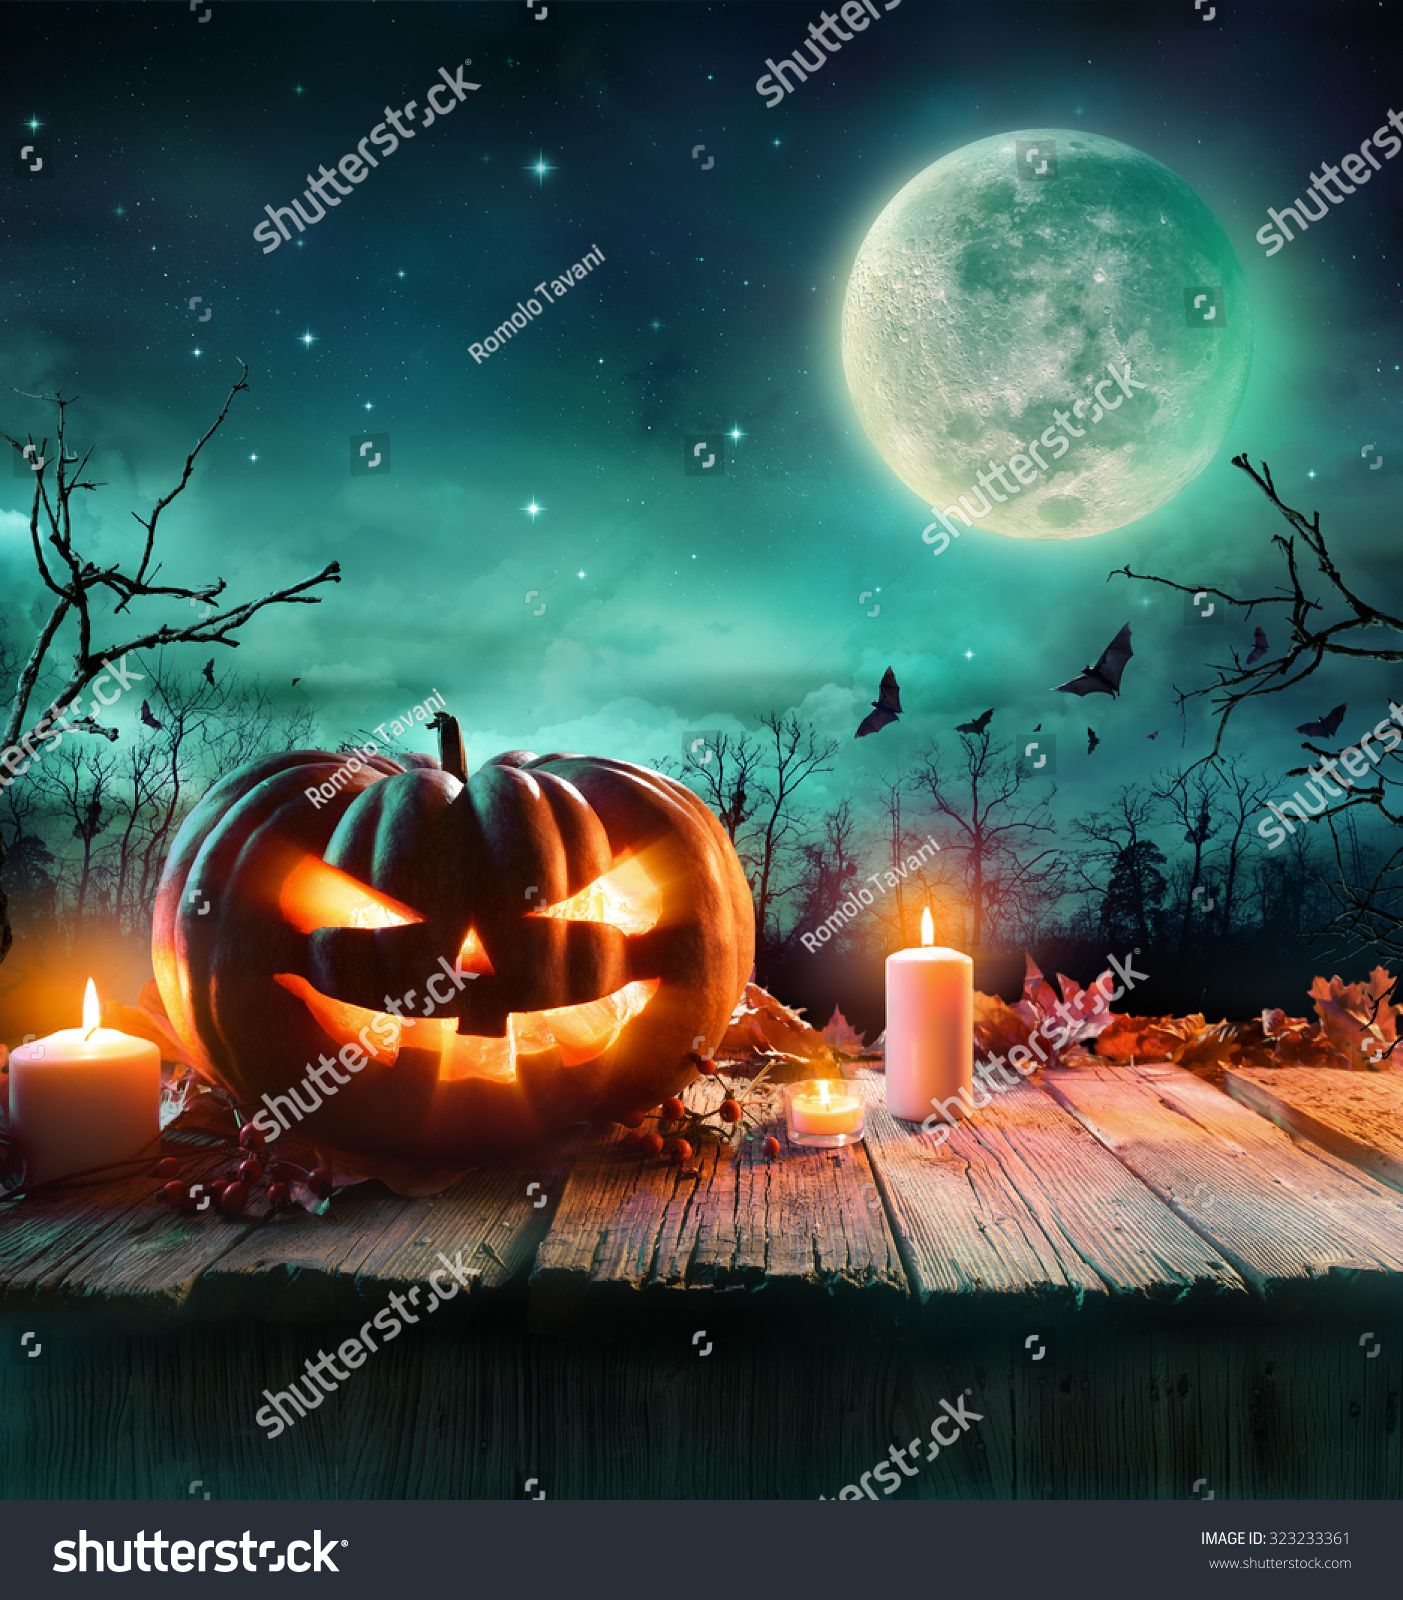 Halloween Pumpkin On Wooden Plank With Candles In A Spooky